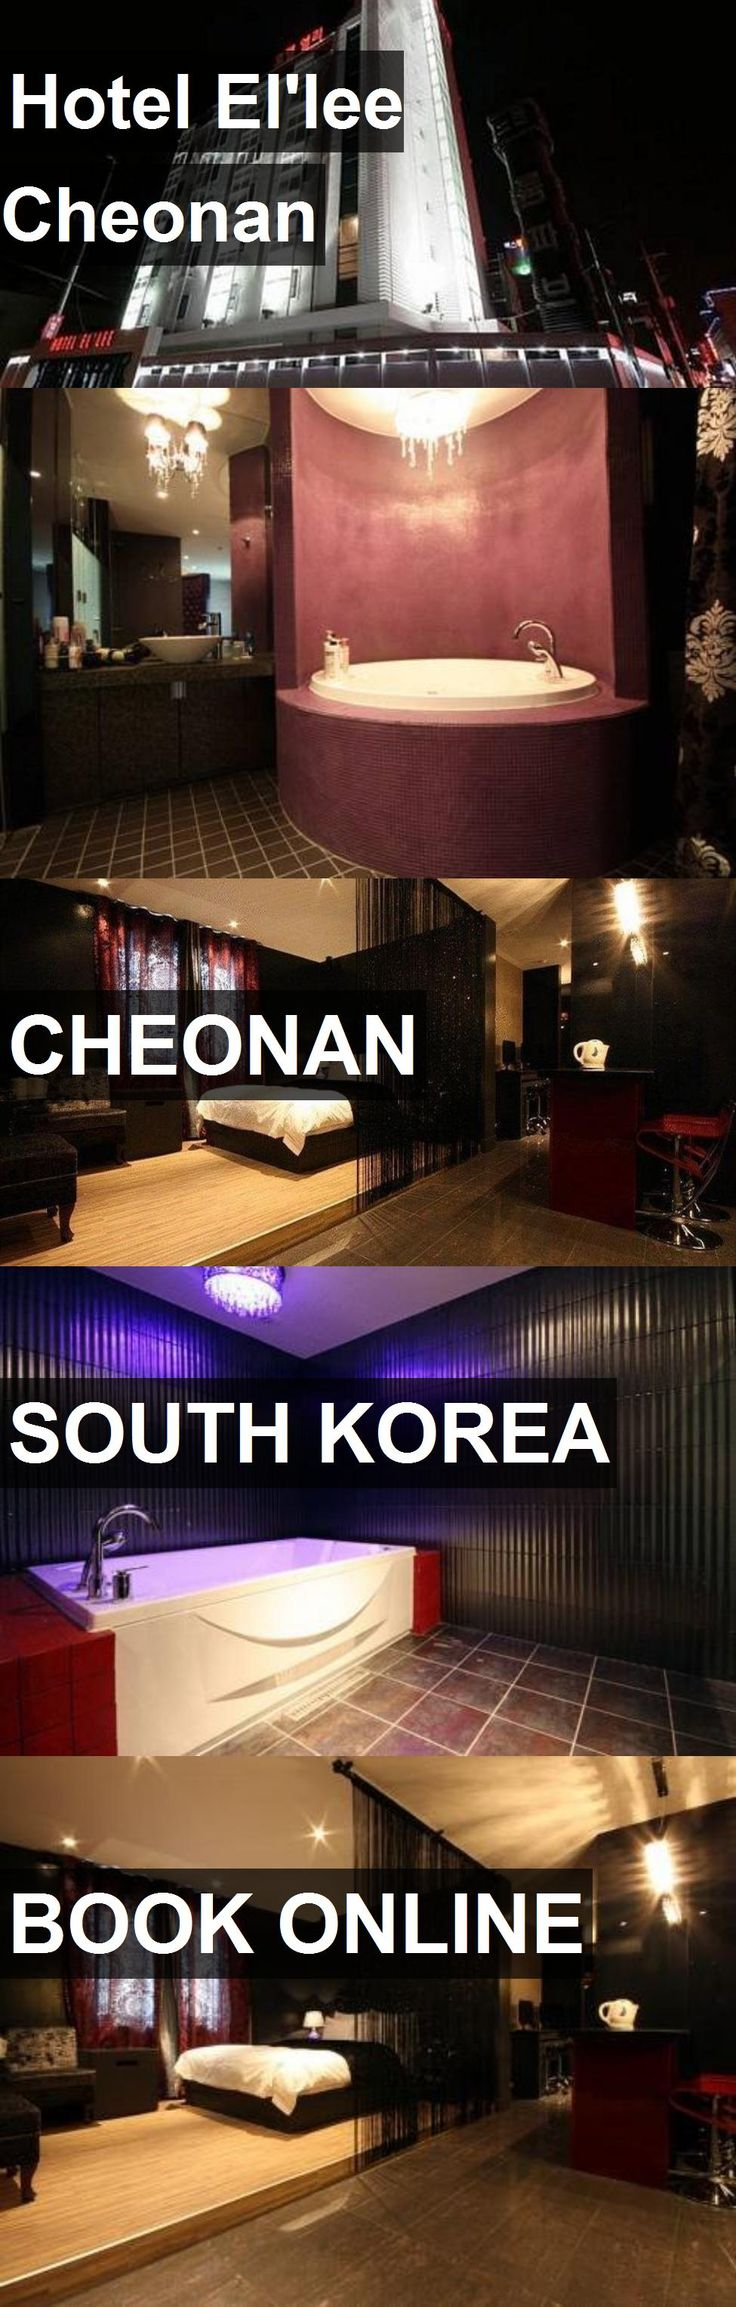 Hotel Hotel El'lee Cheonan in Cheonan, South Korea. For more information, photos, reviews and best prices please follow the link. #SouthKorea #Cheonan #HotelEl'leeCheonan #hotel #travel #vacation